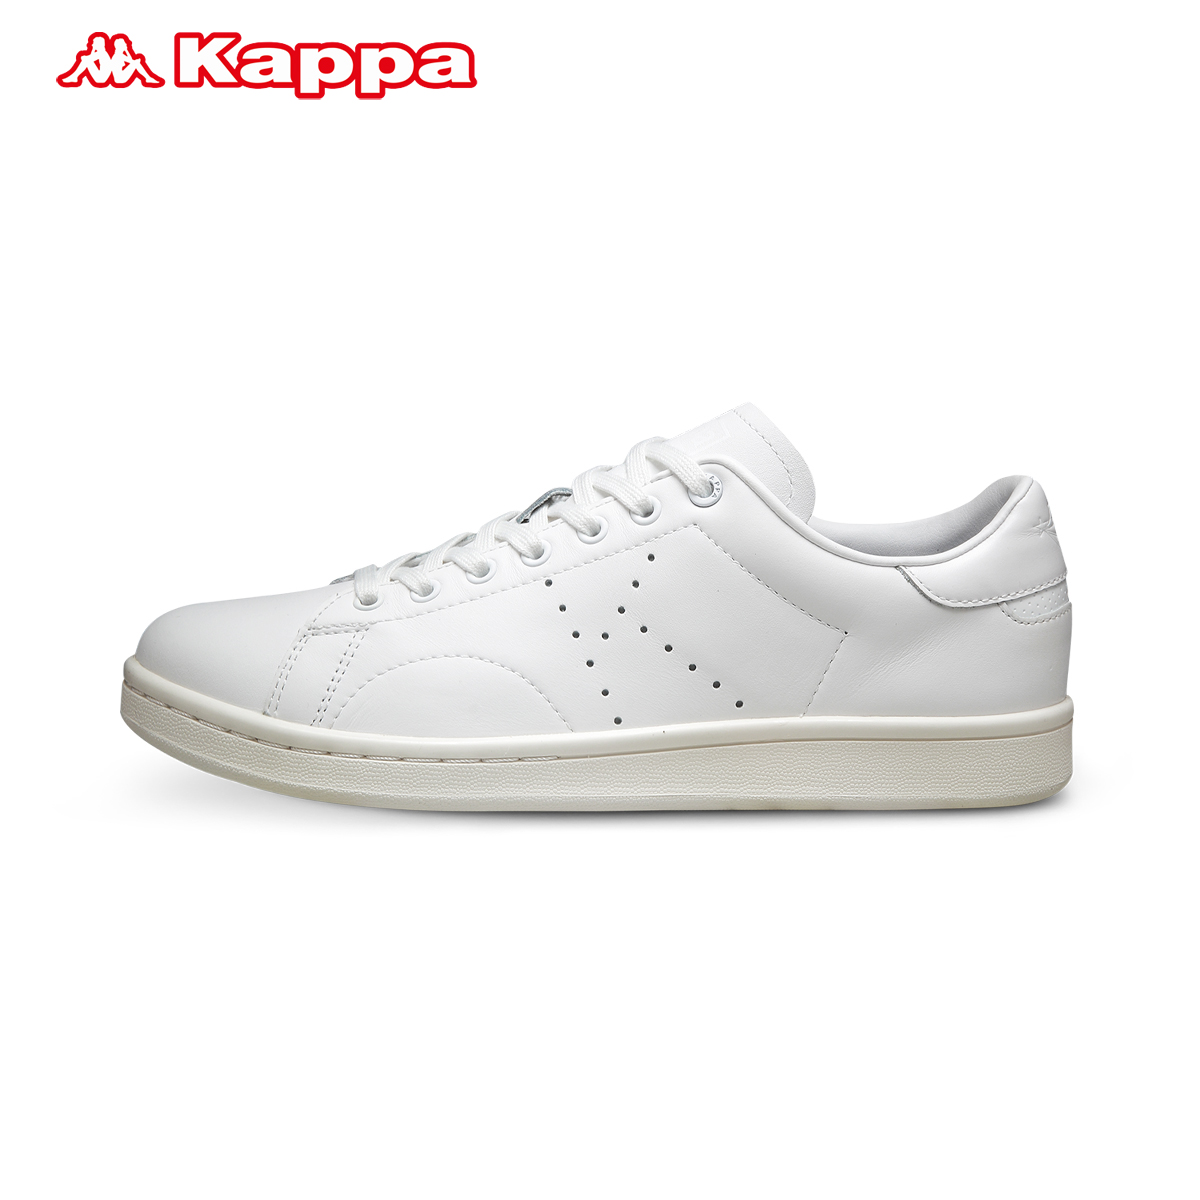 shoes authentic sports shoes casual